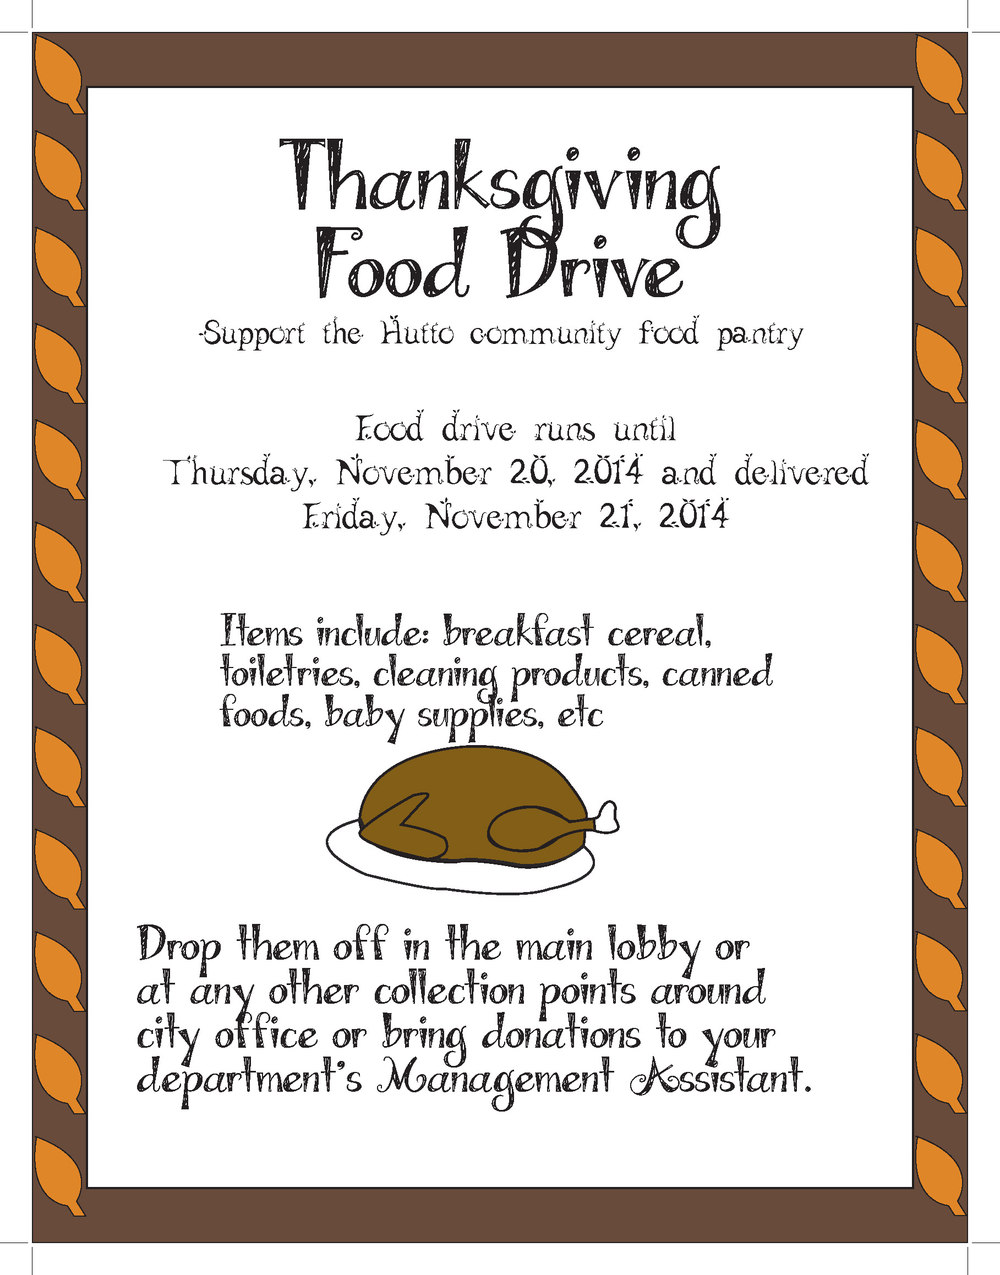 illustration of turkey on thanksgiving food drive flyer